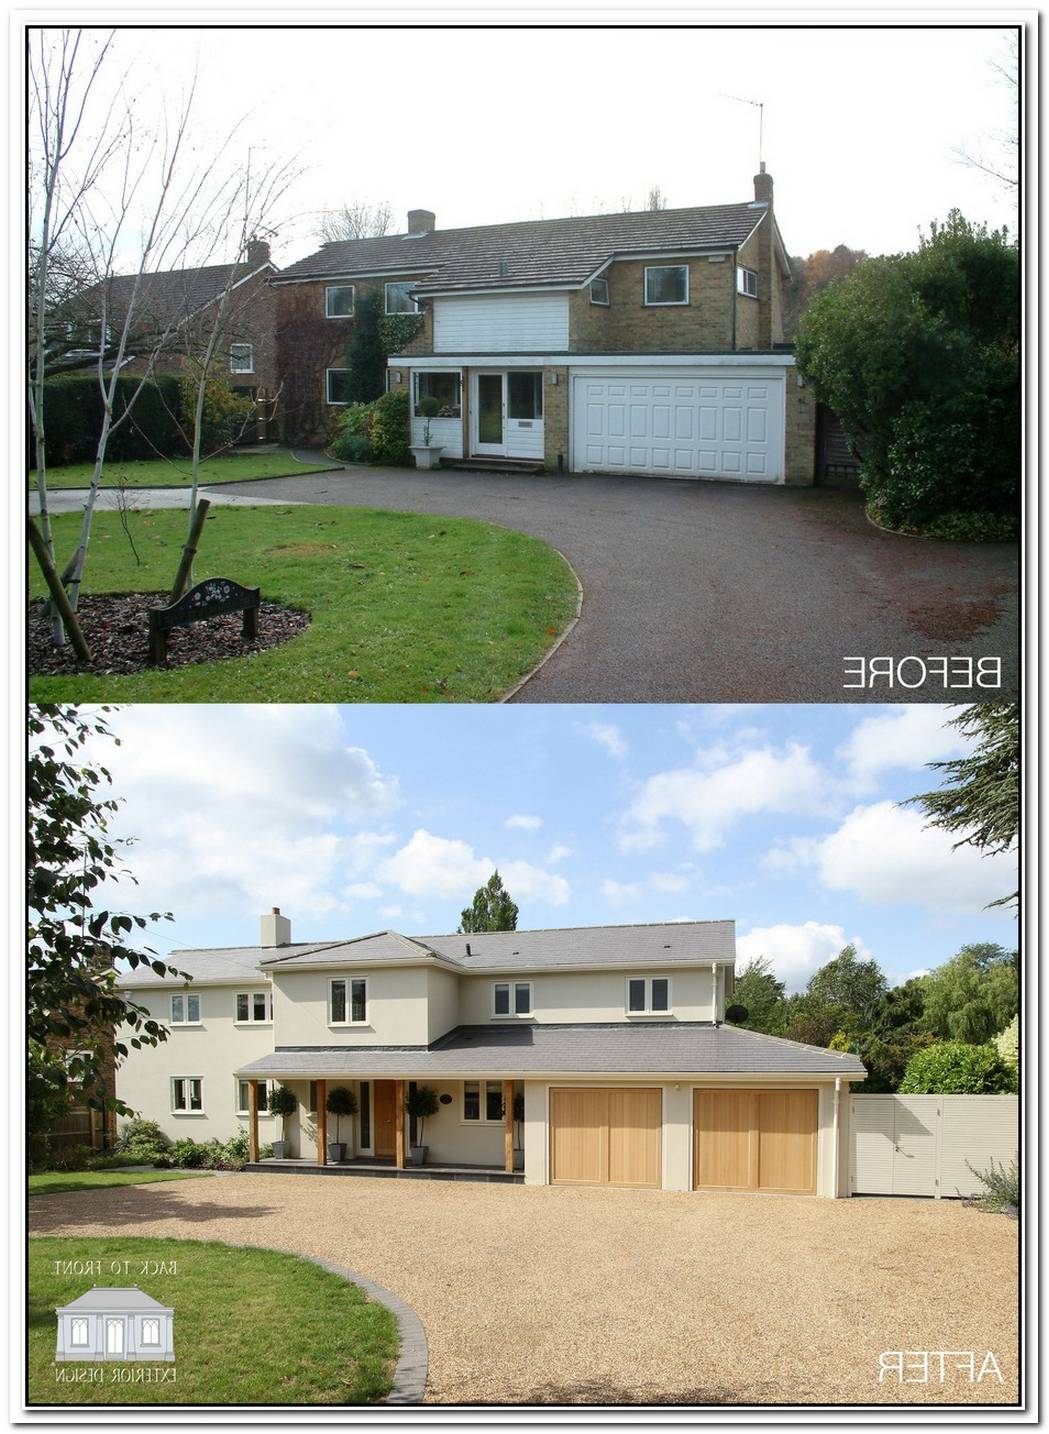 Unbelievable Transformation From A Traditional House To A Modern Residence